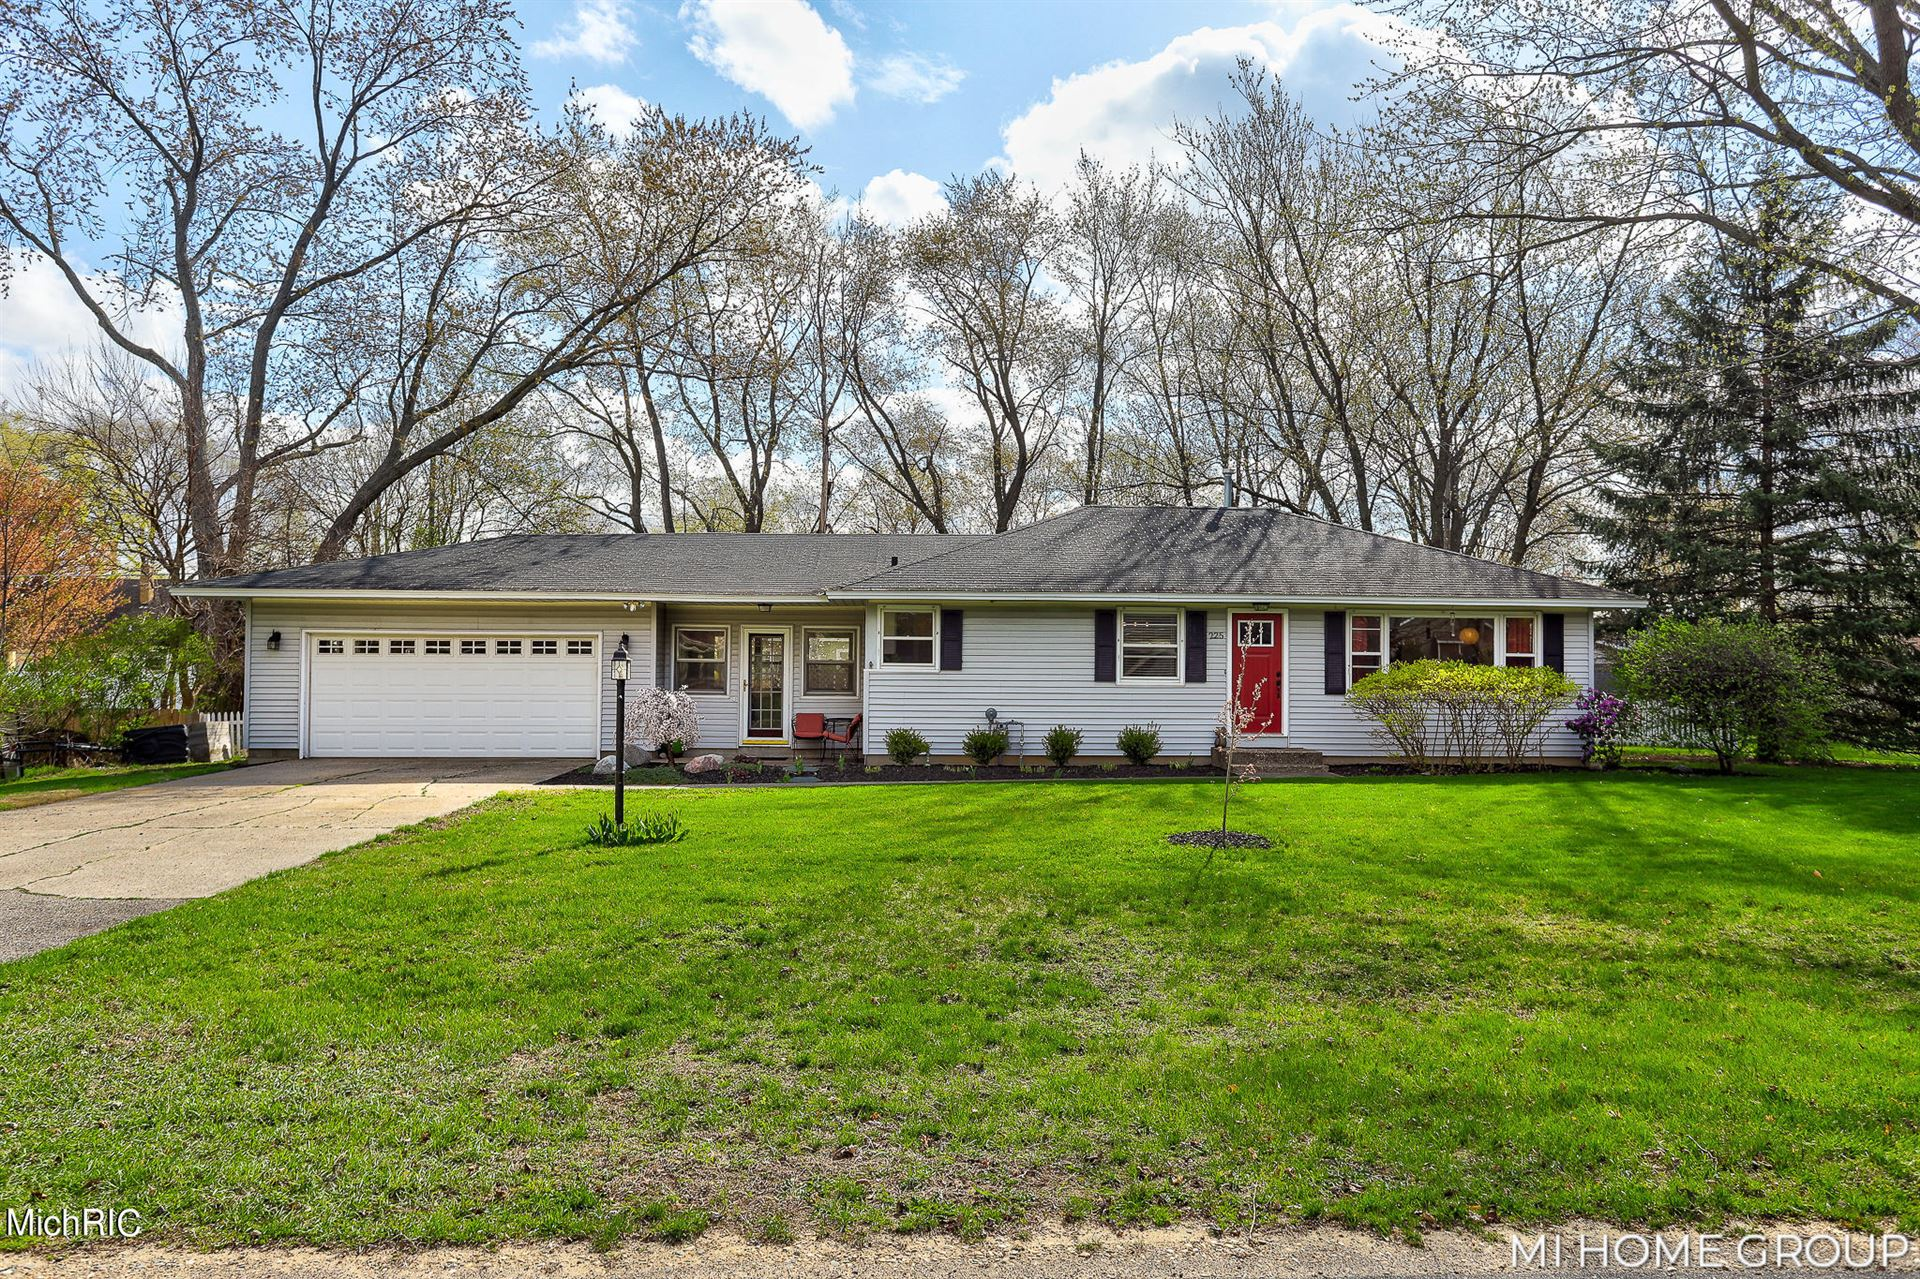 225 Glendale Avenue, Holland, MI 49423 - MLS#: 21012418